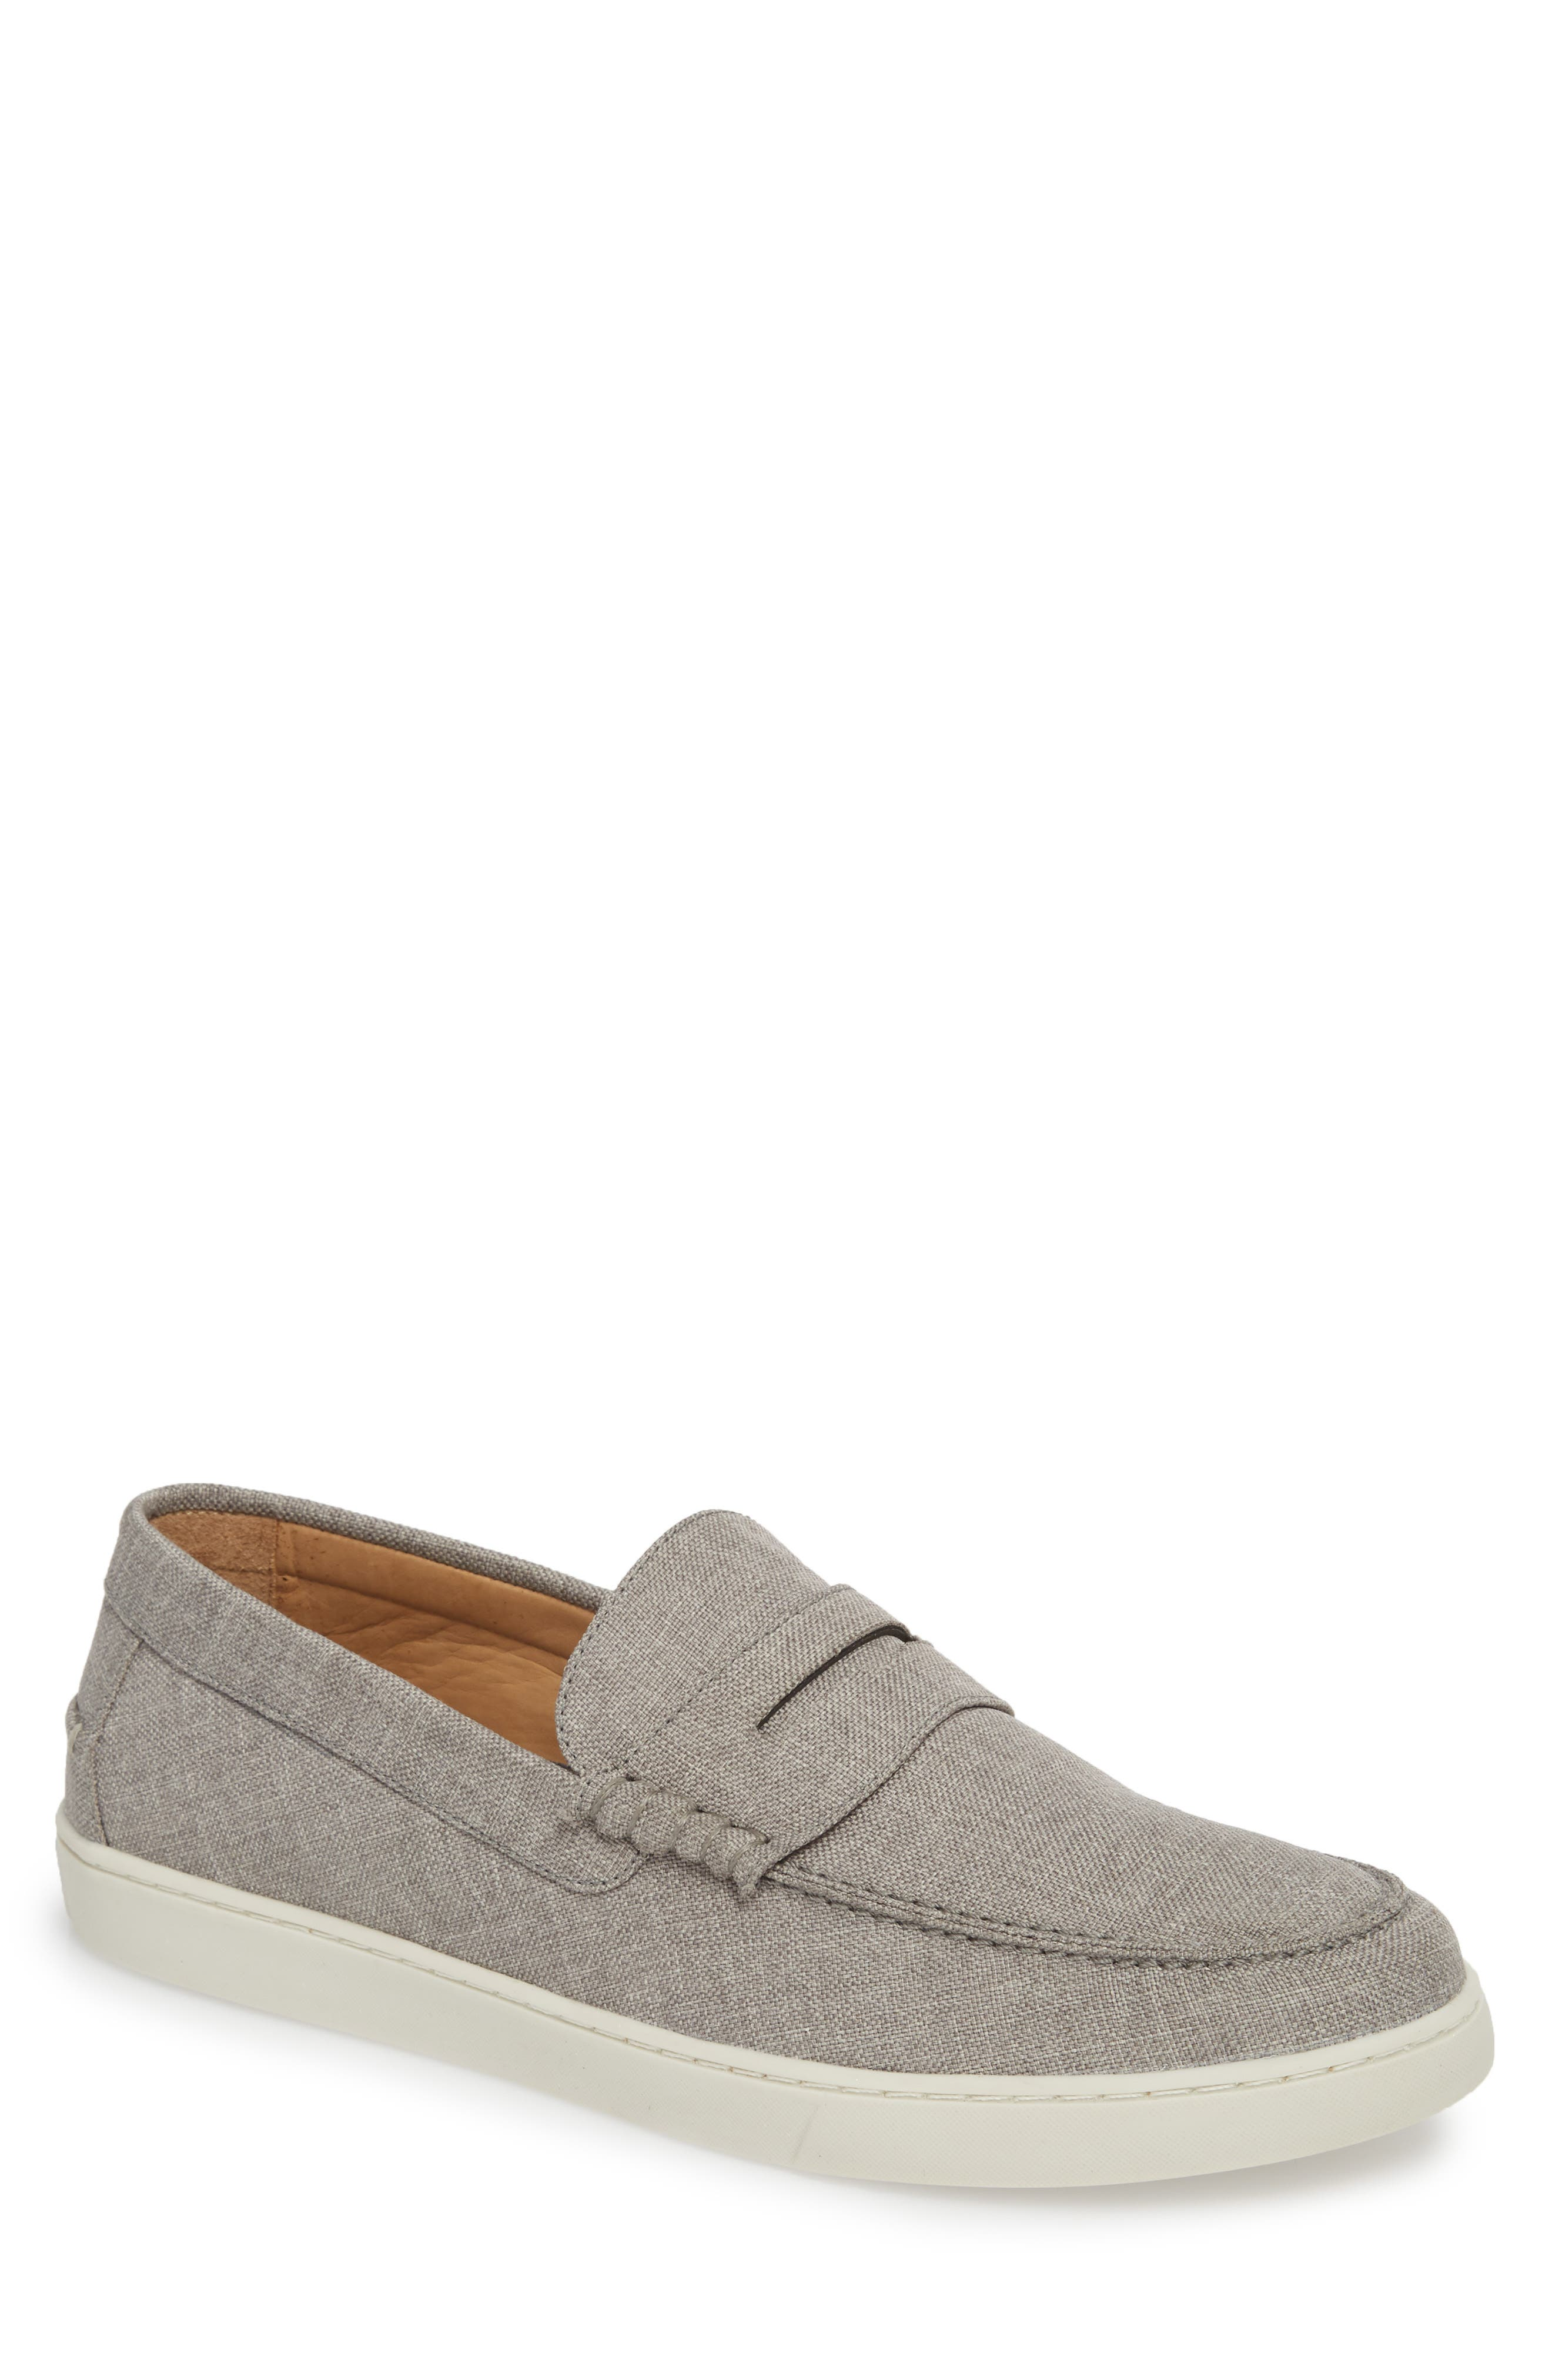 Chelan Penny Loafer,                             Main thumbnail 1, color,                             GREY CANVAS